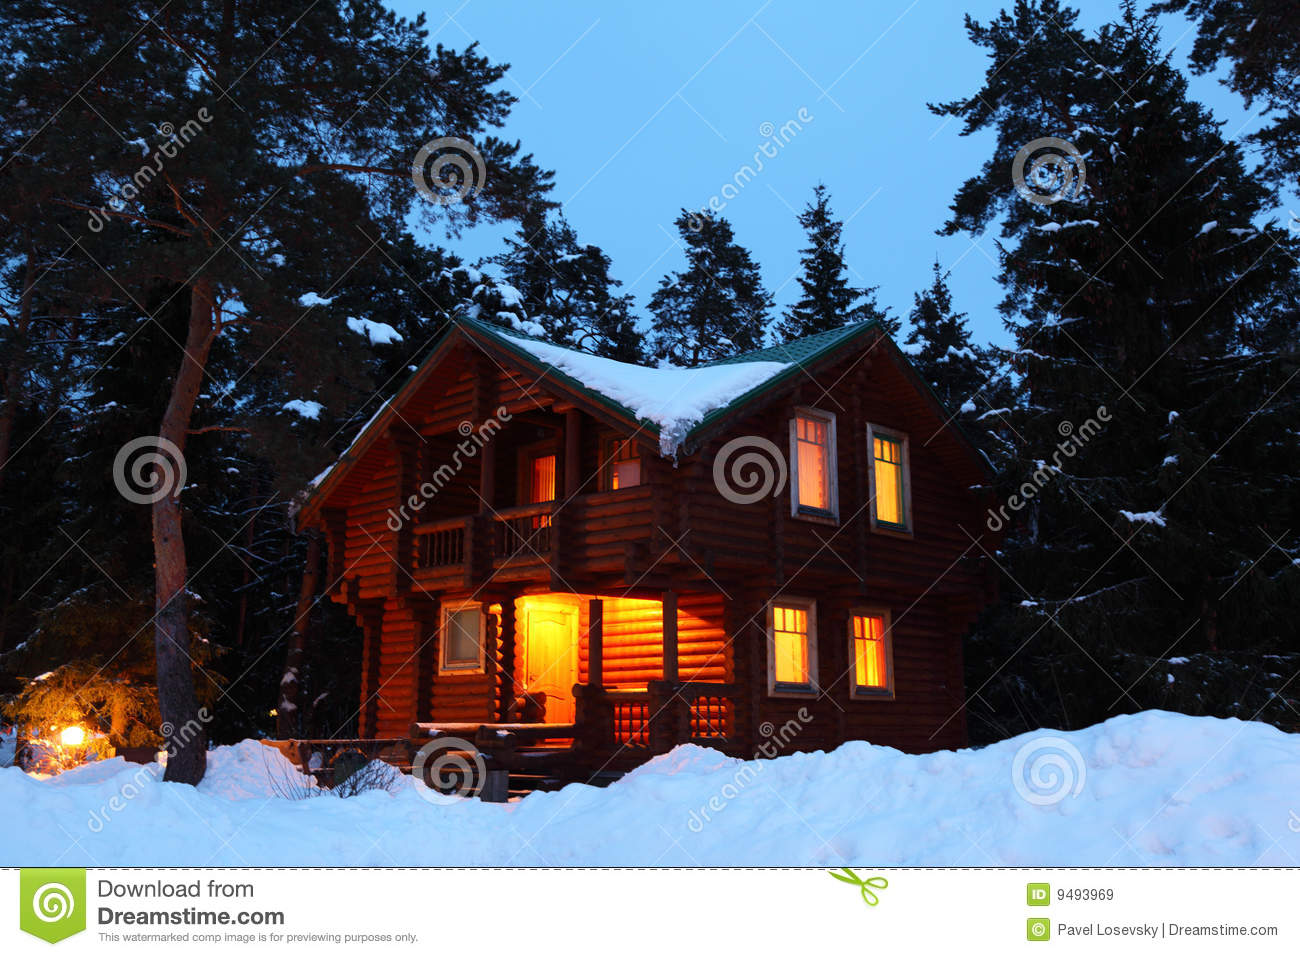 Twilight House house in winter wood in twilight royalty free stock images - image